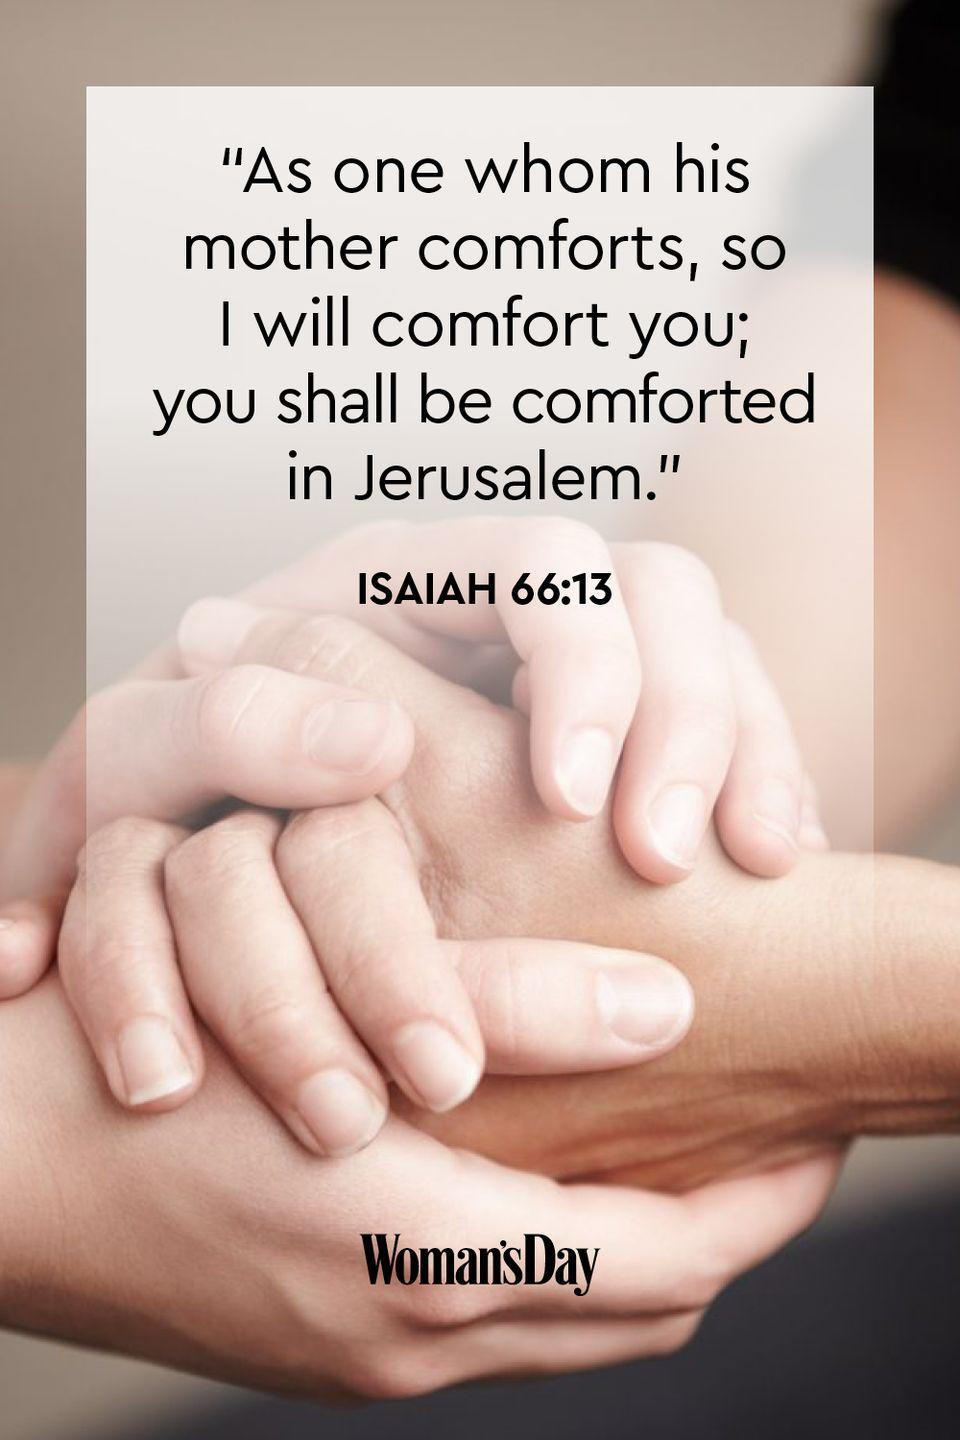 "<p>""As one whom his mother comforts, so I will comfort you; you shall be comforted in Jerusalem.""</p><p><strong>The Good News: </strong>A mother's comfort is so great, that the Lord even compares his own willingness to comfort his people to theirs. </p>"